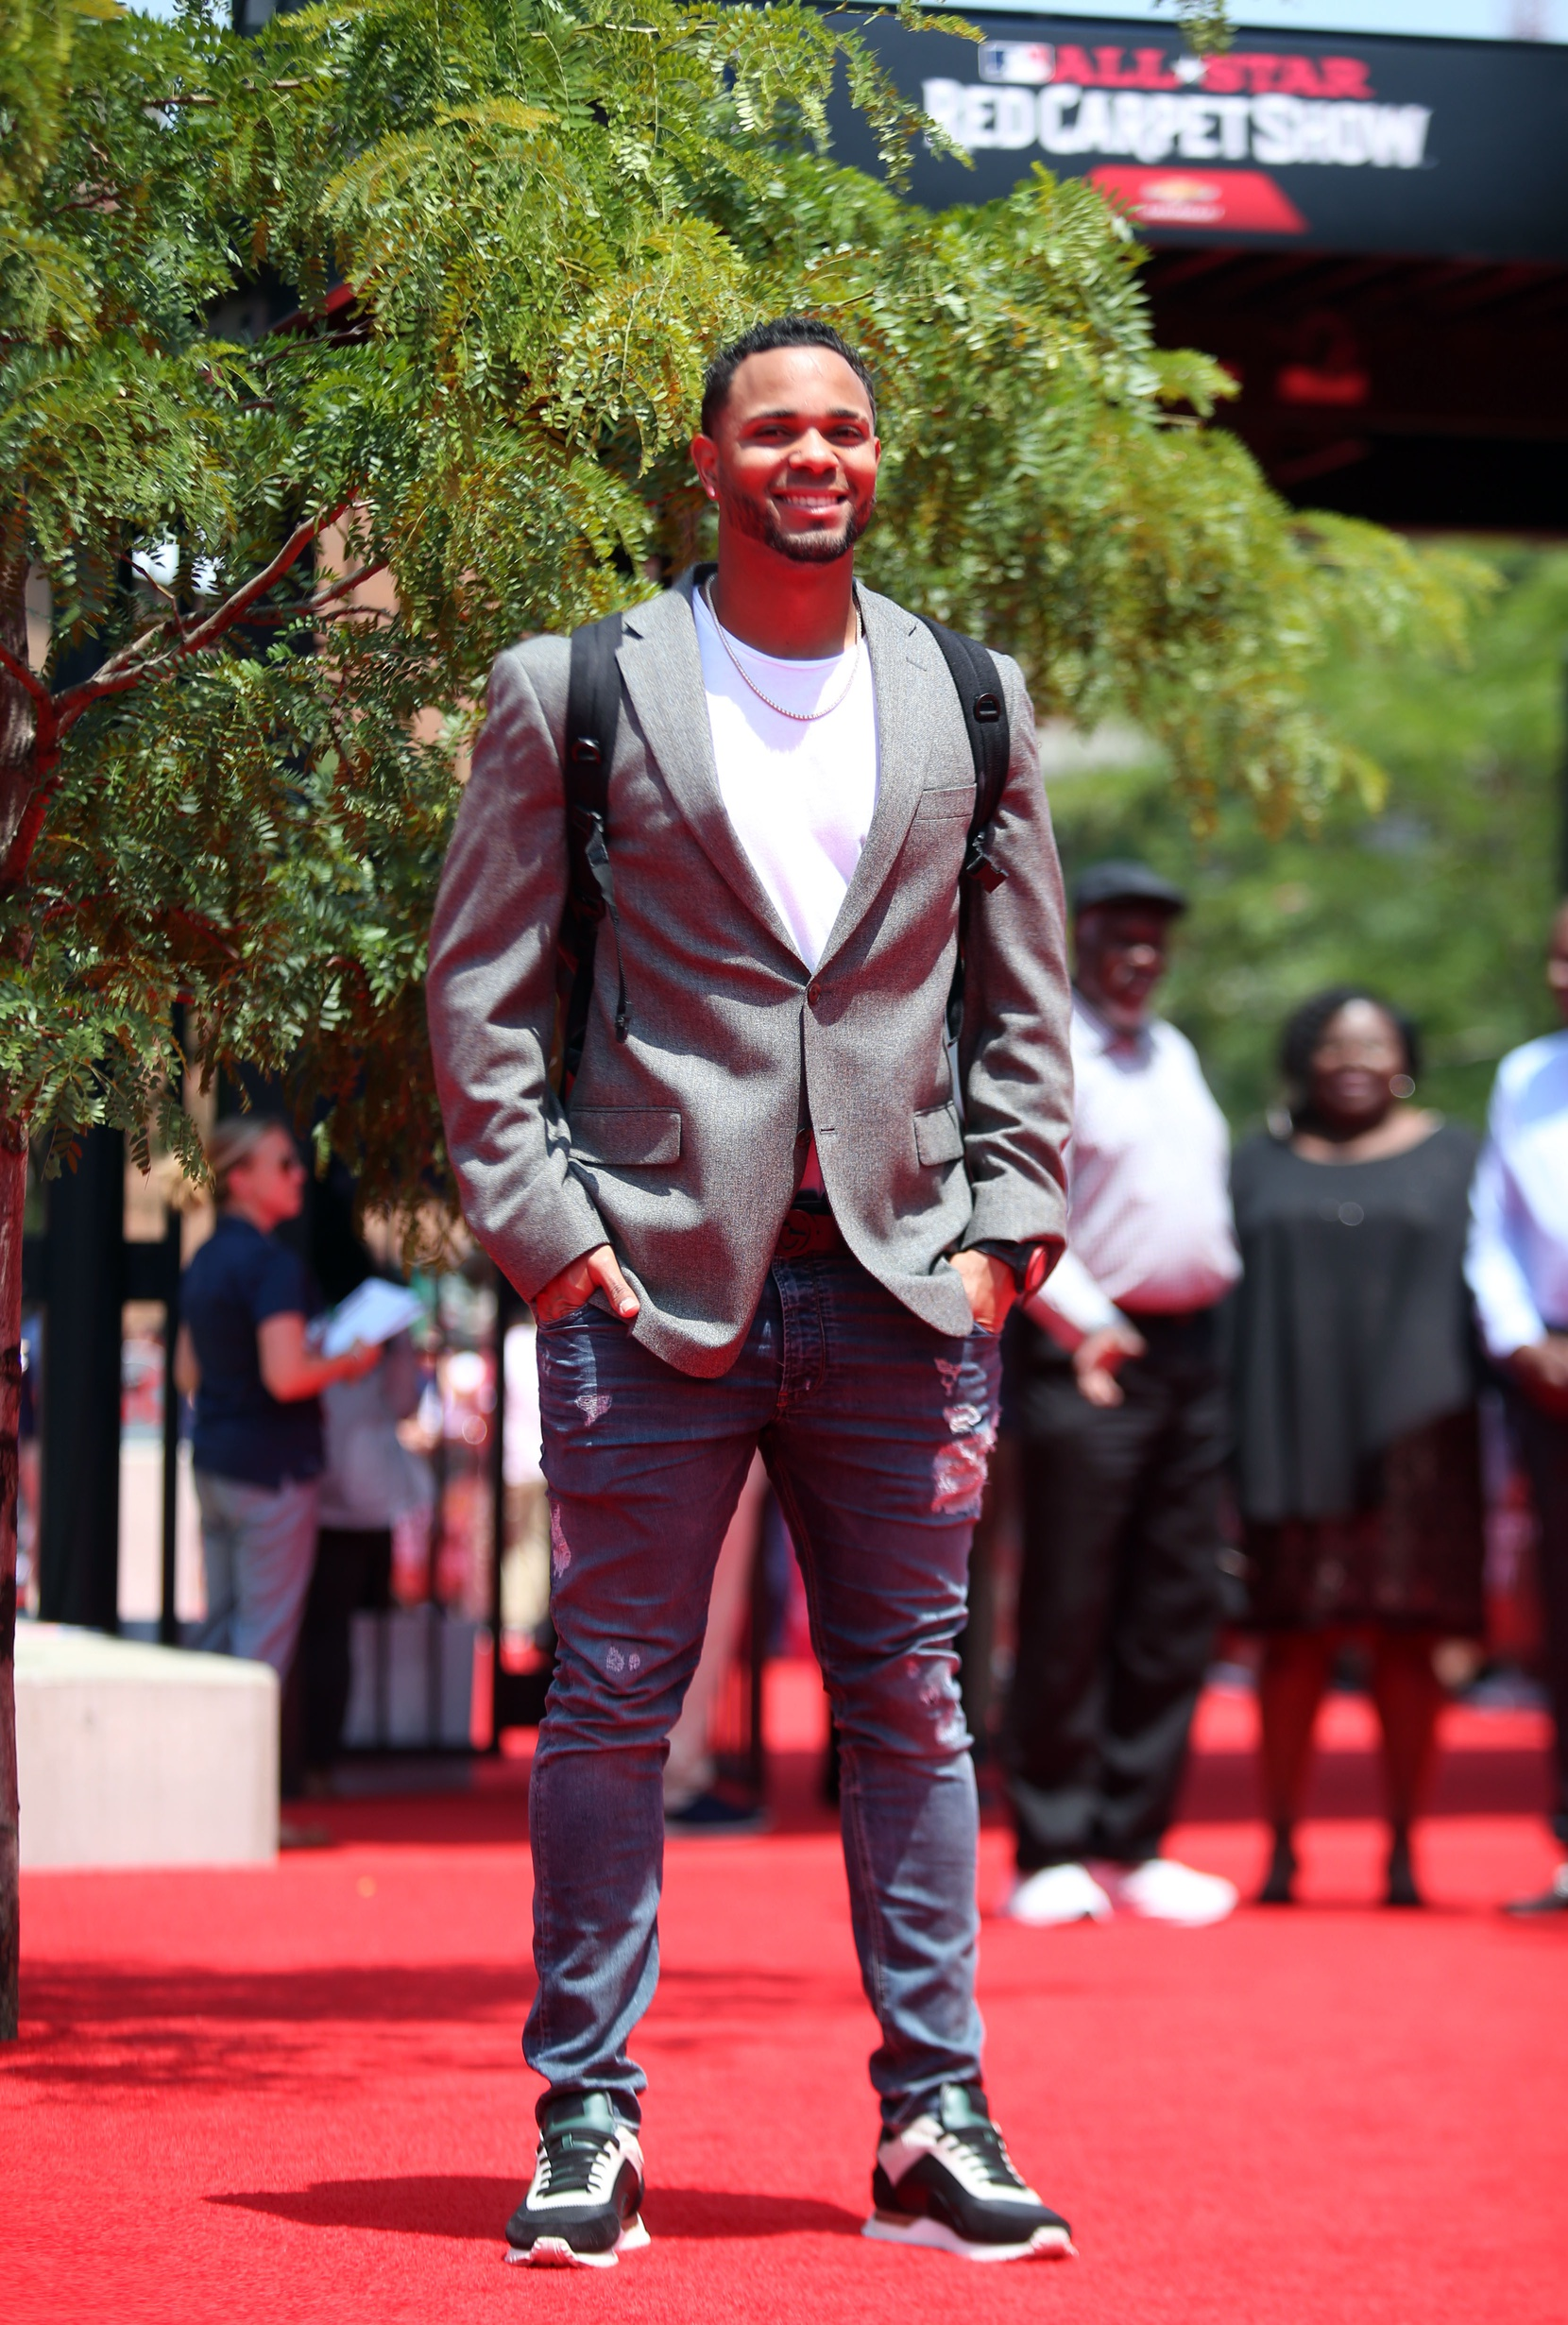 Xander Bogaerts thankful to be two-time All-Star, despite snub